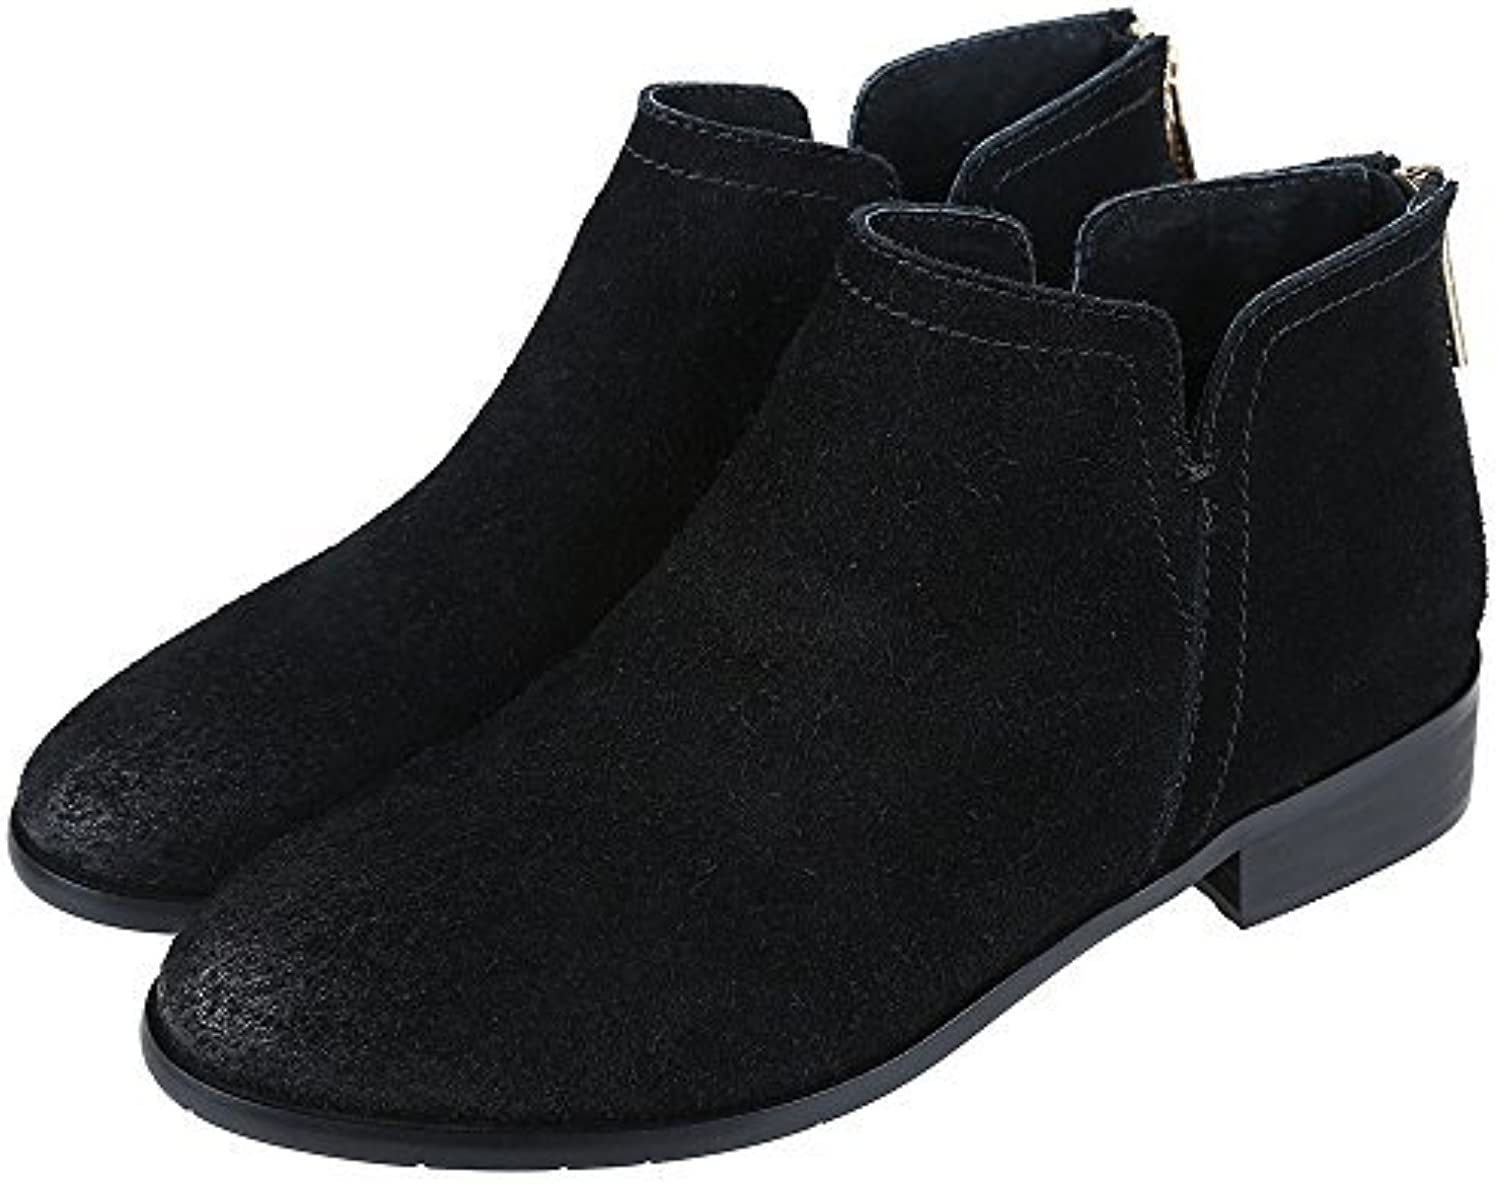 Meeshine Womens Boots Leather Suede Low Heel Side V Cut Ankle Bootie